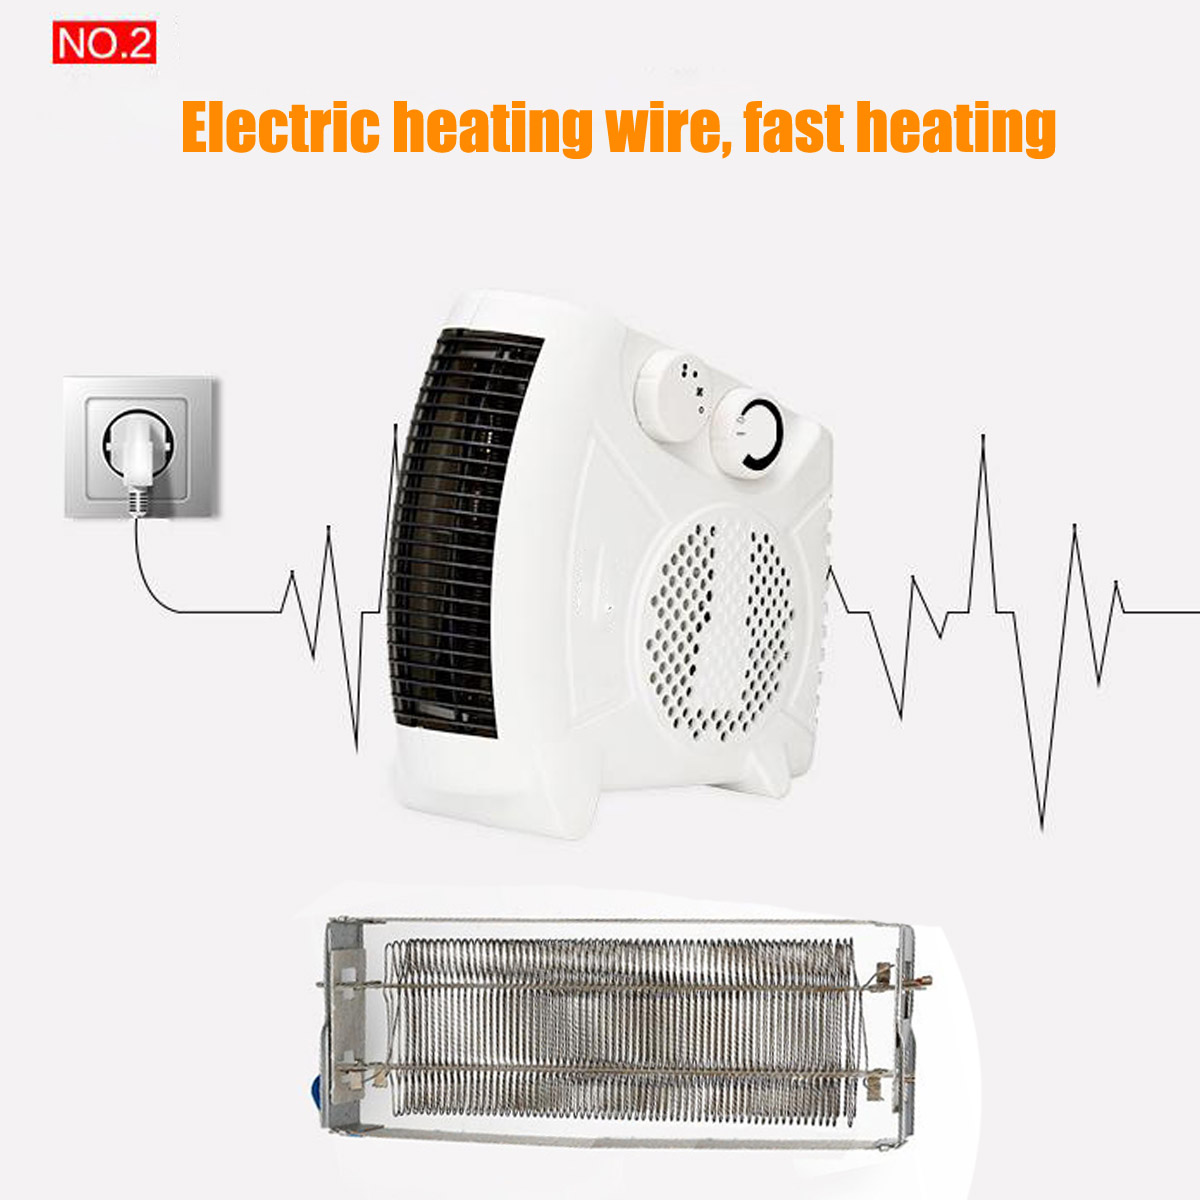 1450W Small Portable Electric Air Heater Warmer Fan Home Office Caravan Winter